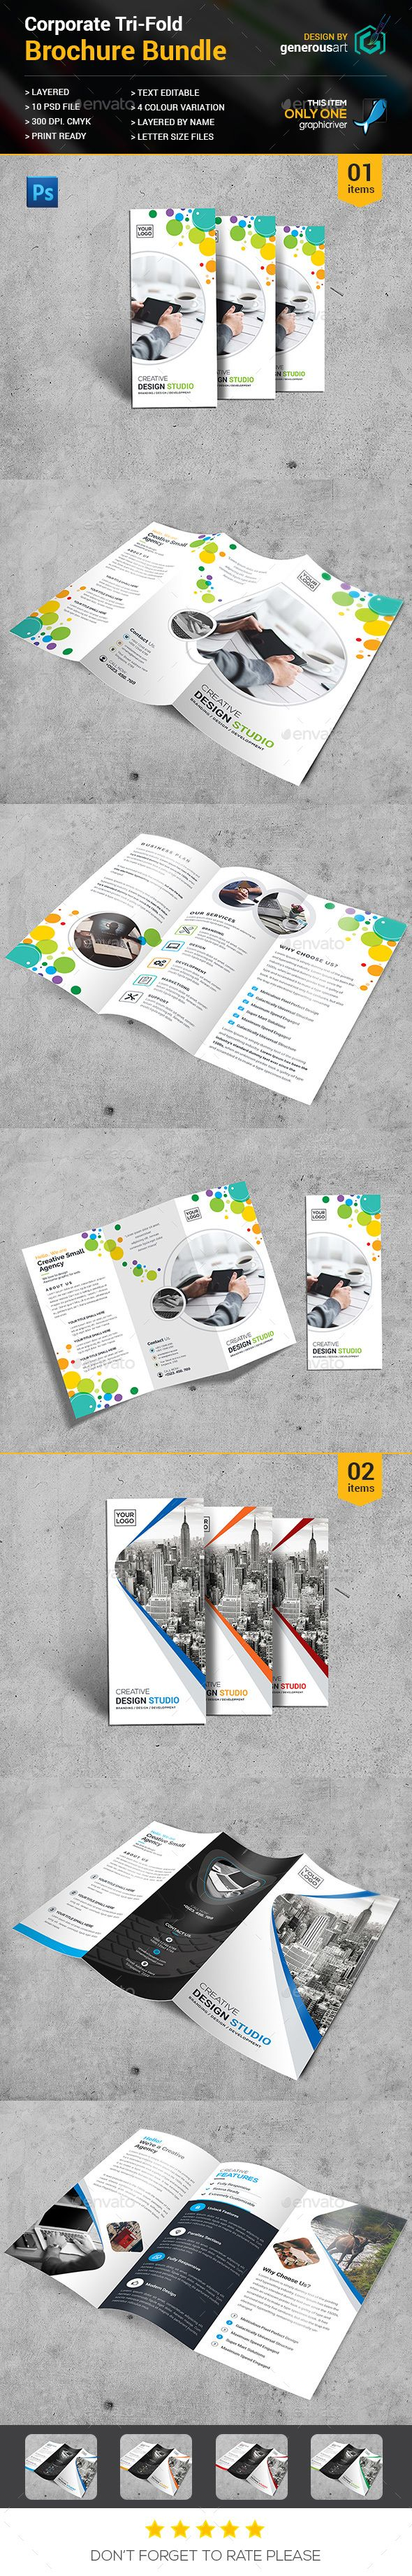 2 Tri-fold Brochure Templates PSD. Download here: http://graphicriver.net/item/trifold-bundle_2-in-1/16812800?ref=ksioks